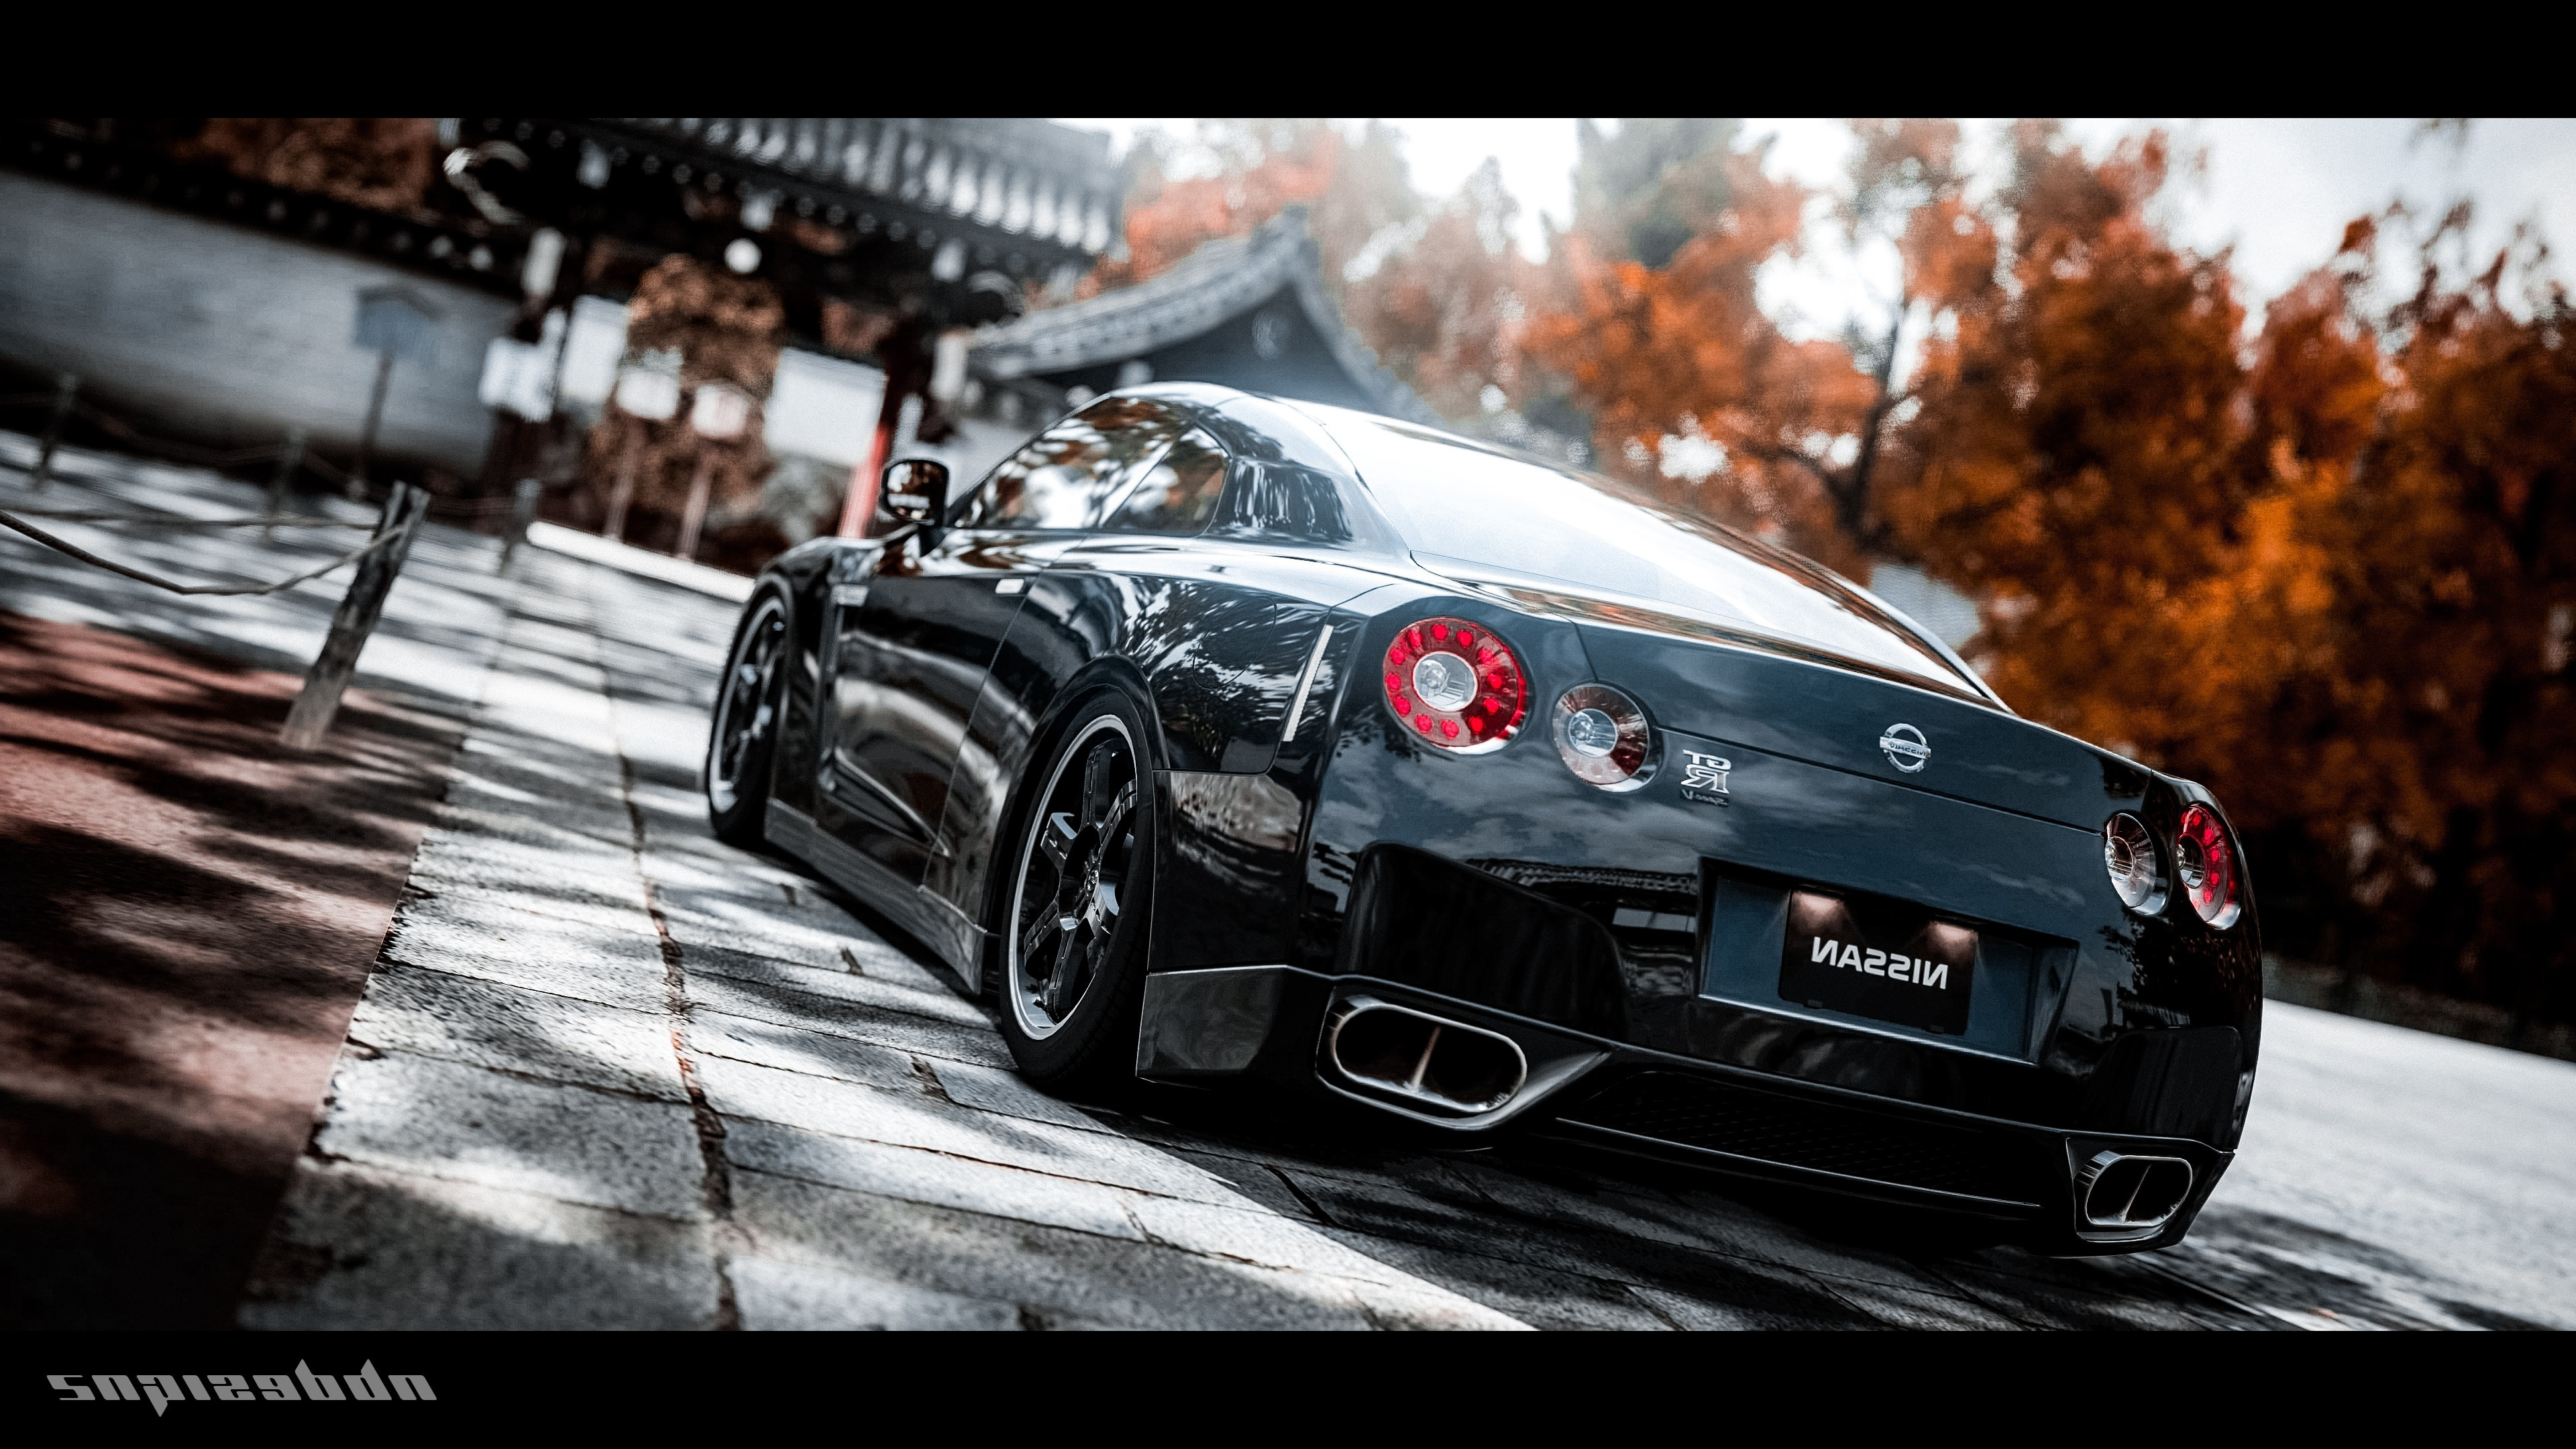 nissan gtr 2 4k 1548528095 - Nissan GTR 2 4k - nissan wallpapers, nissan gtr wallpapers, cars wallpapers, black wallpapers